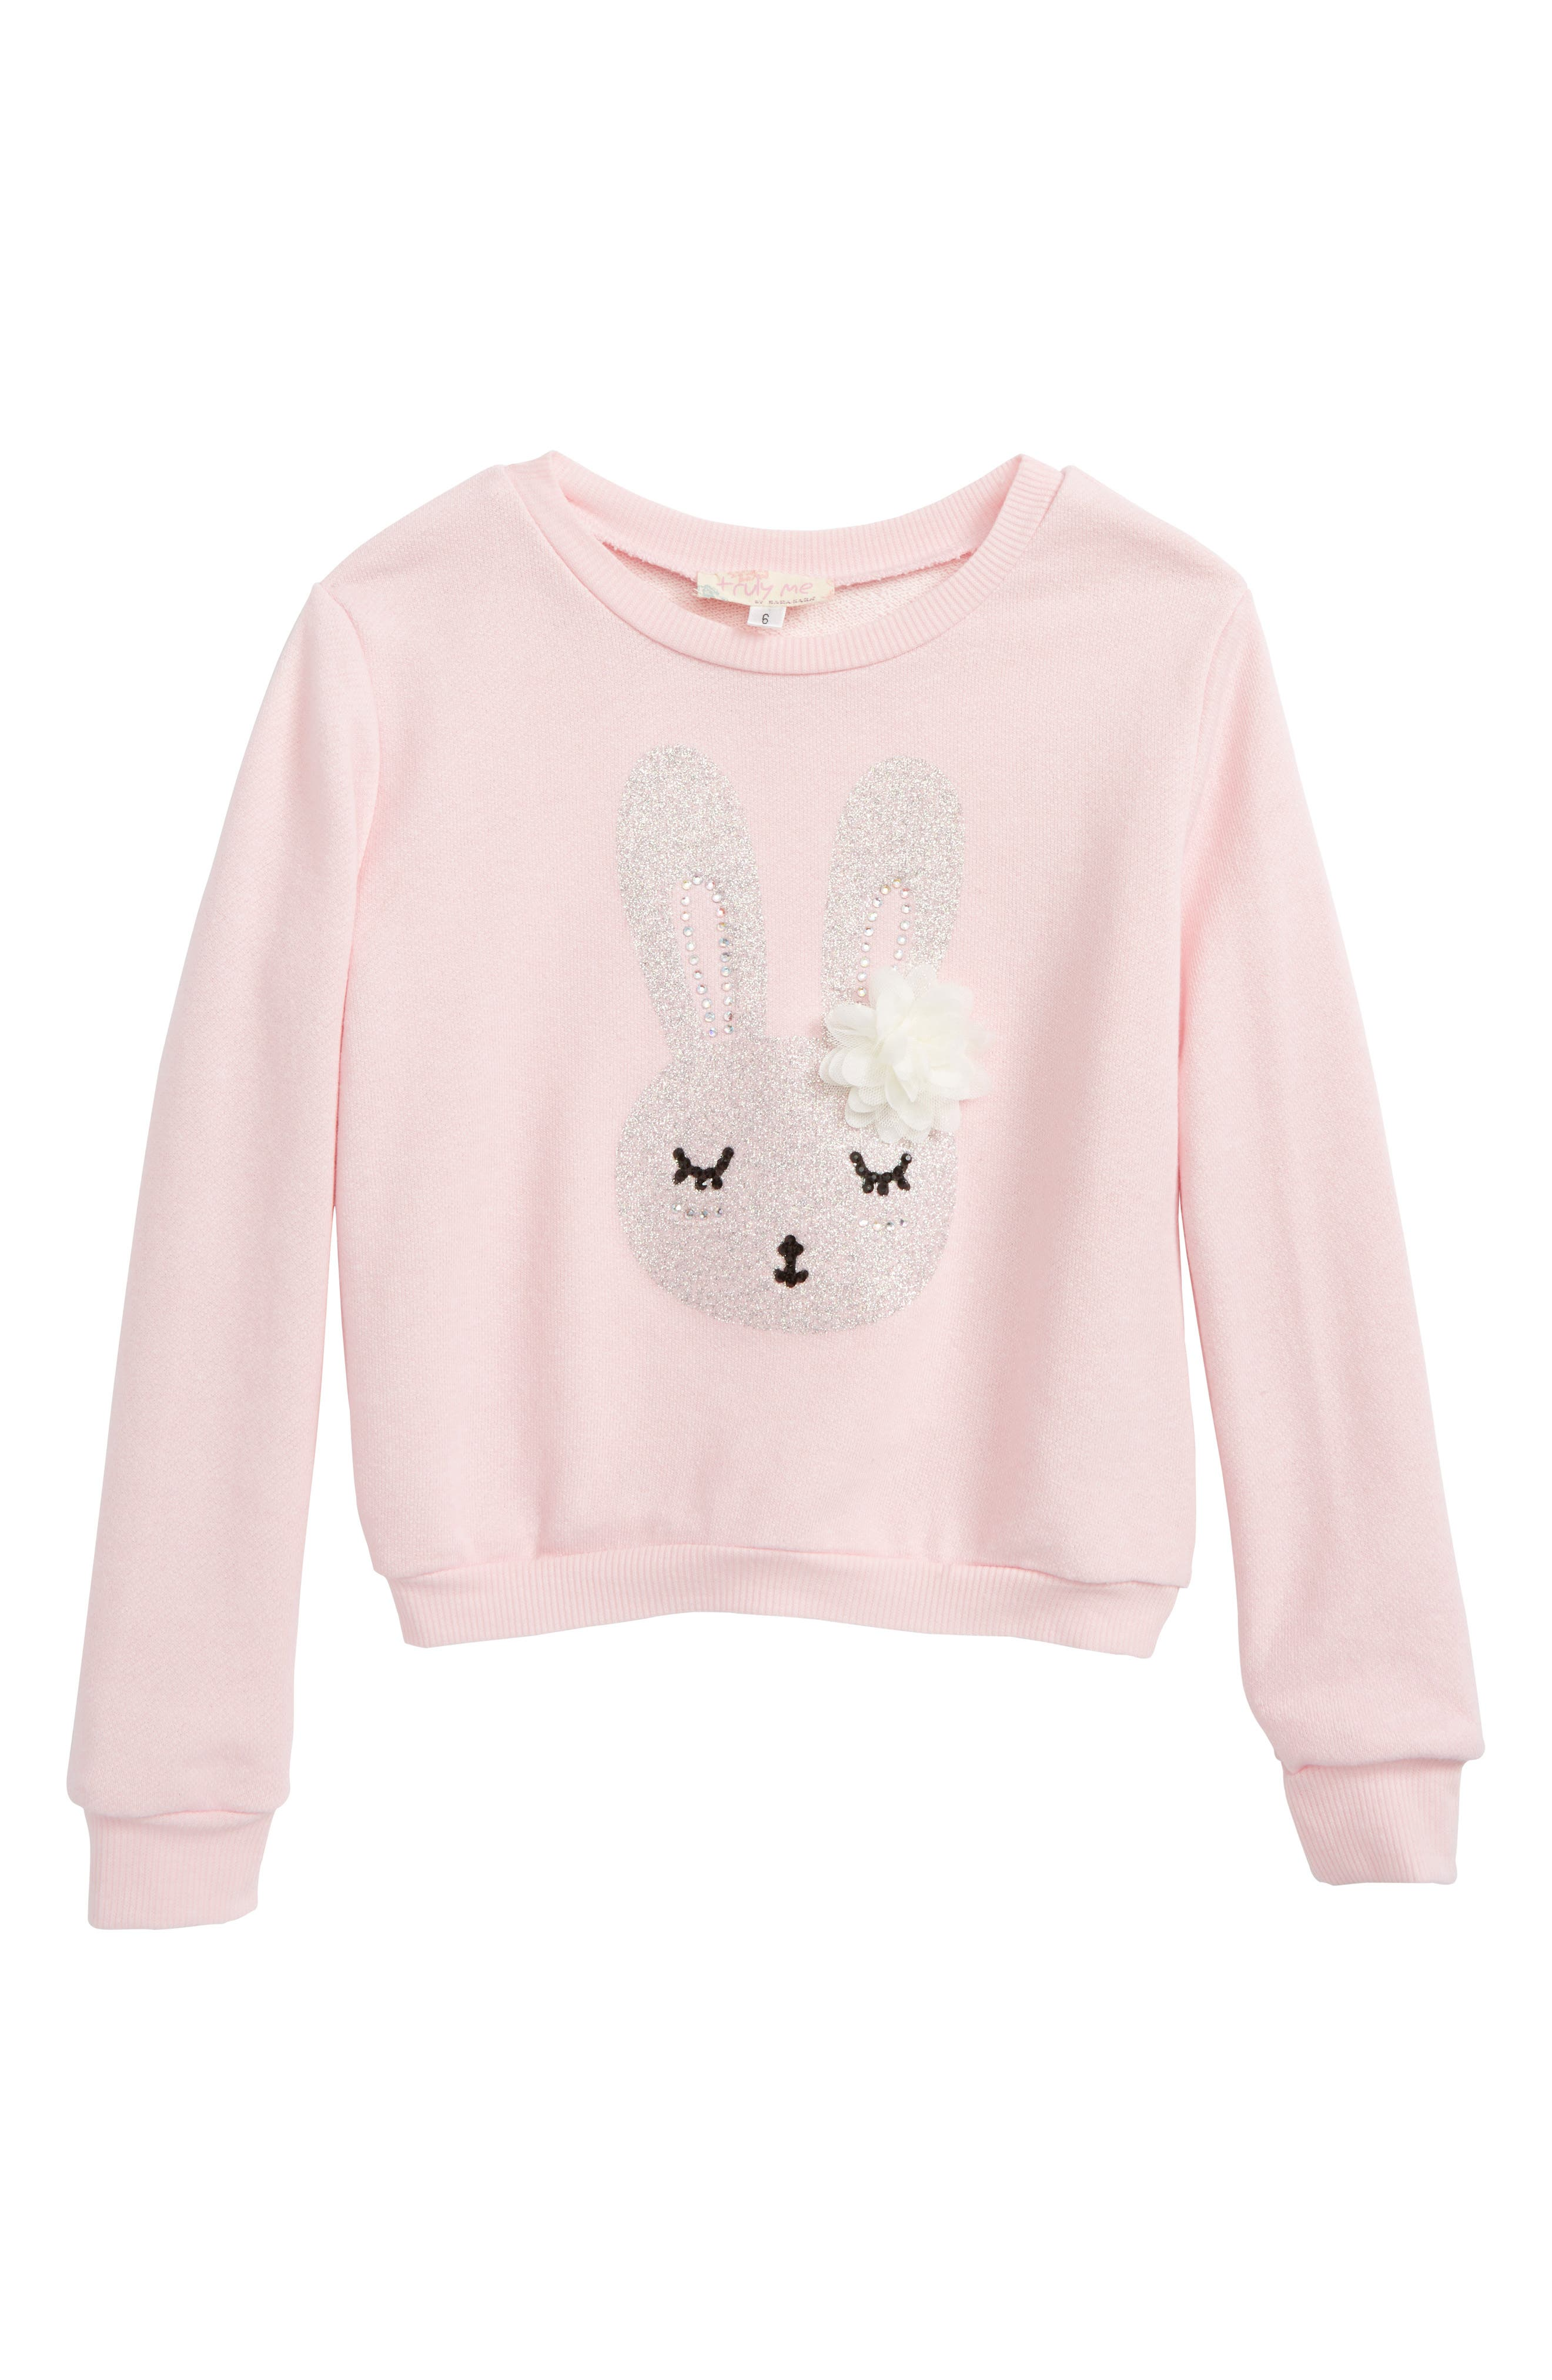 TRULY ME Bunny Graphic Sweatshirt, Main, color, 680